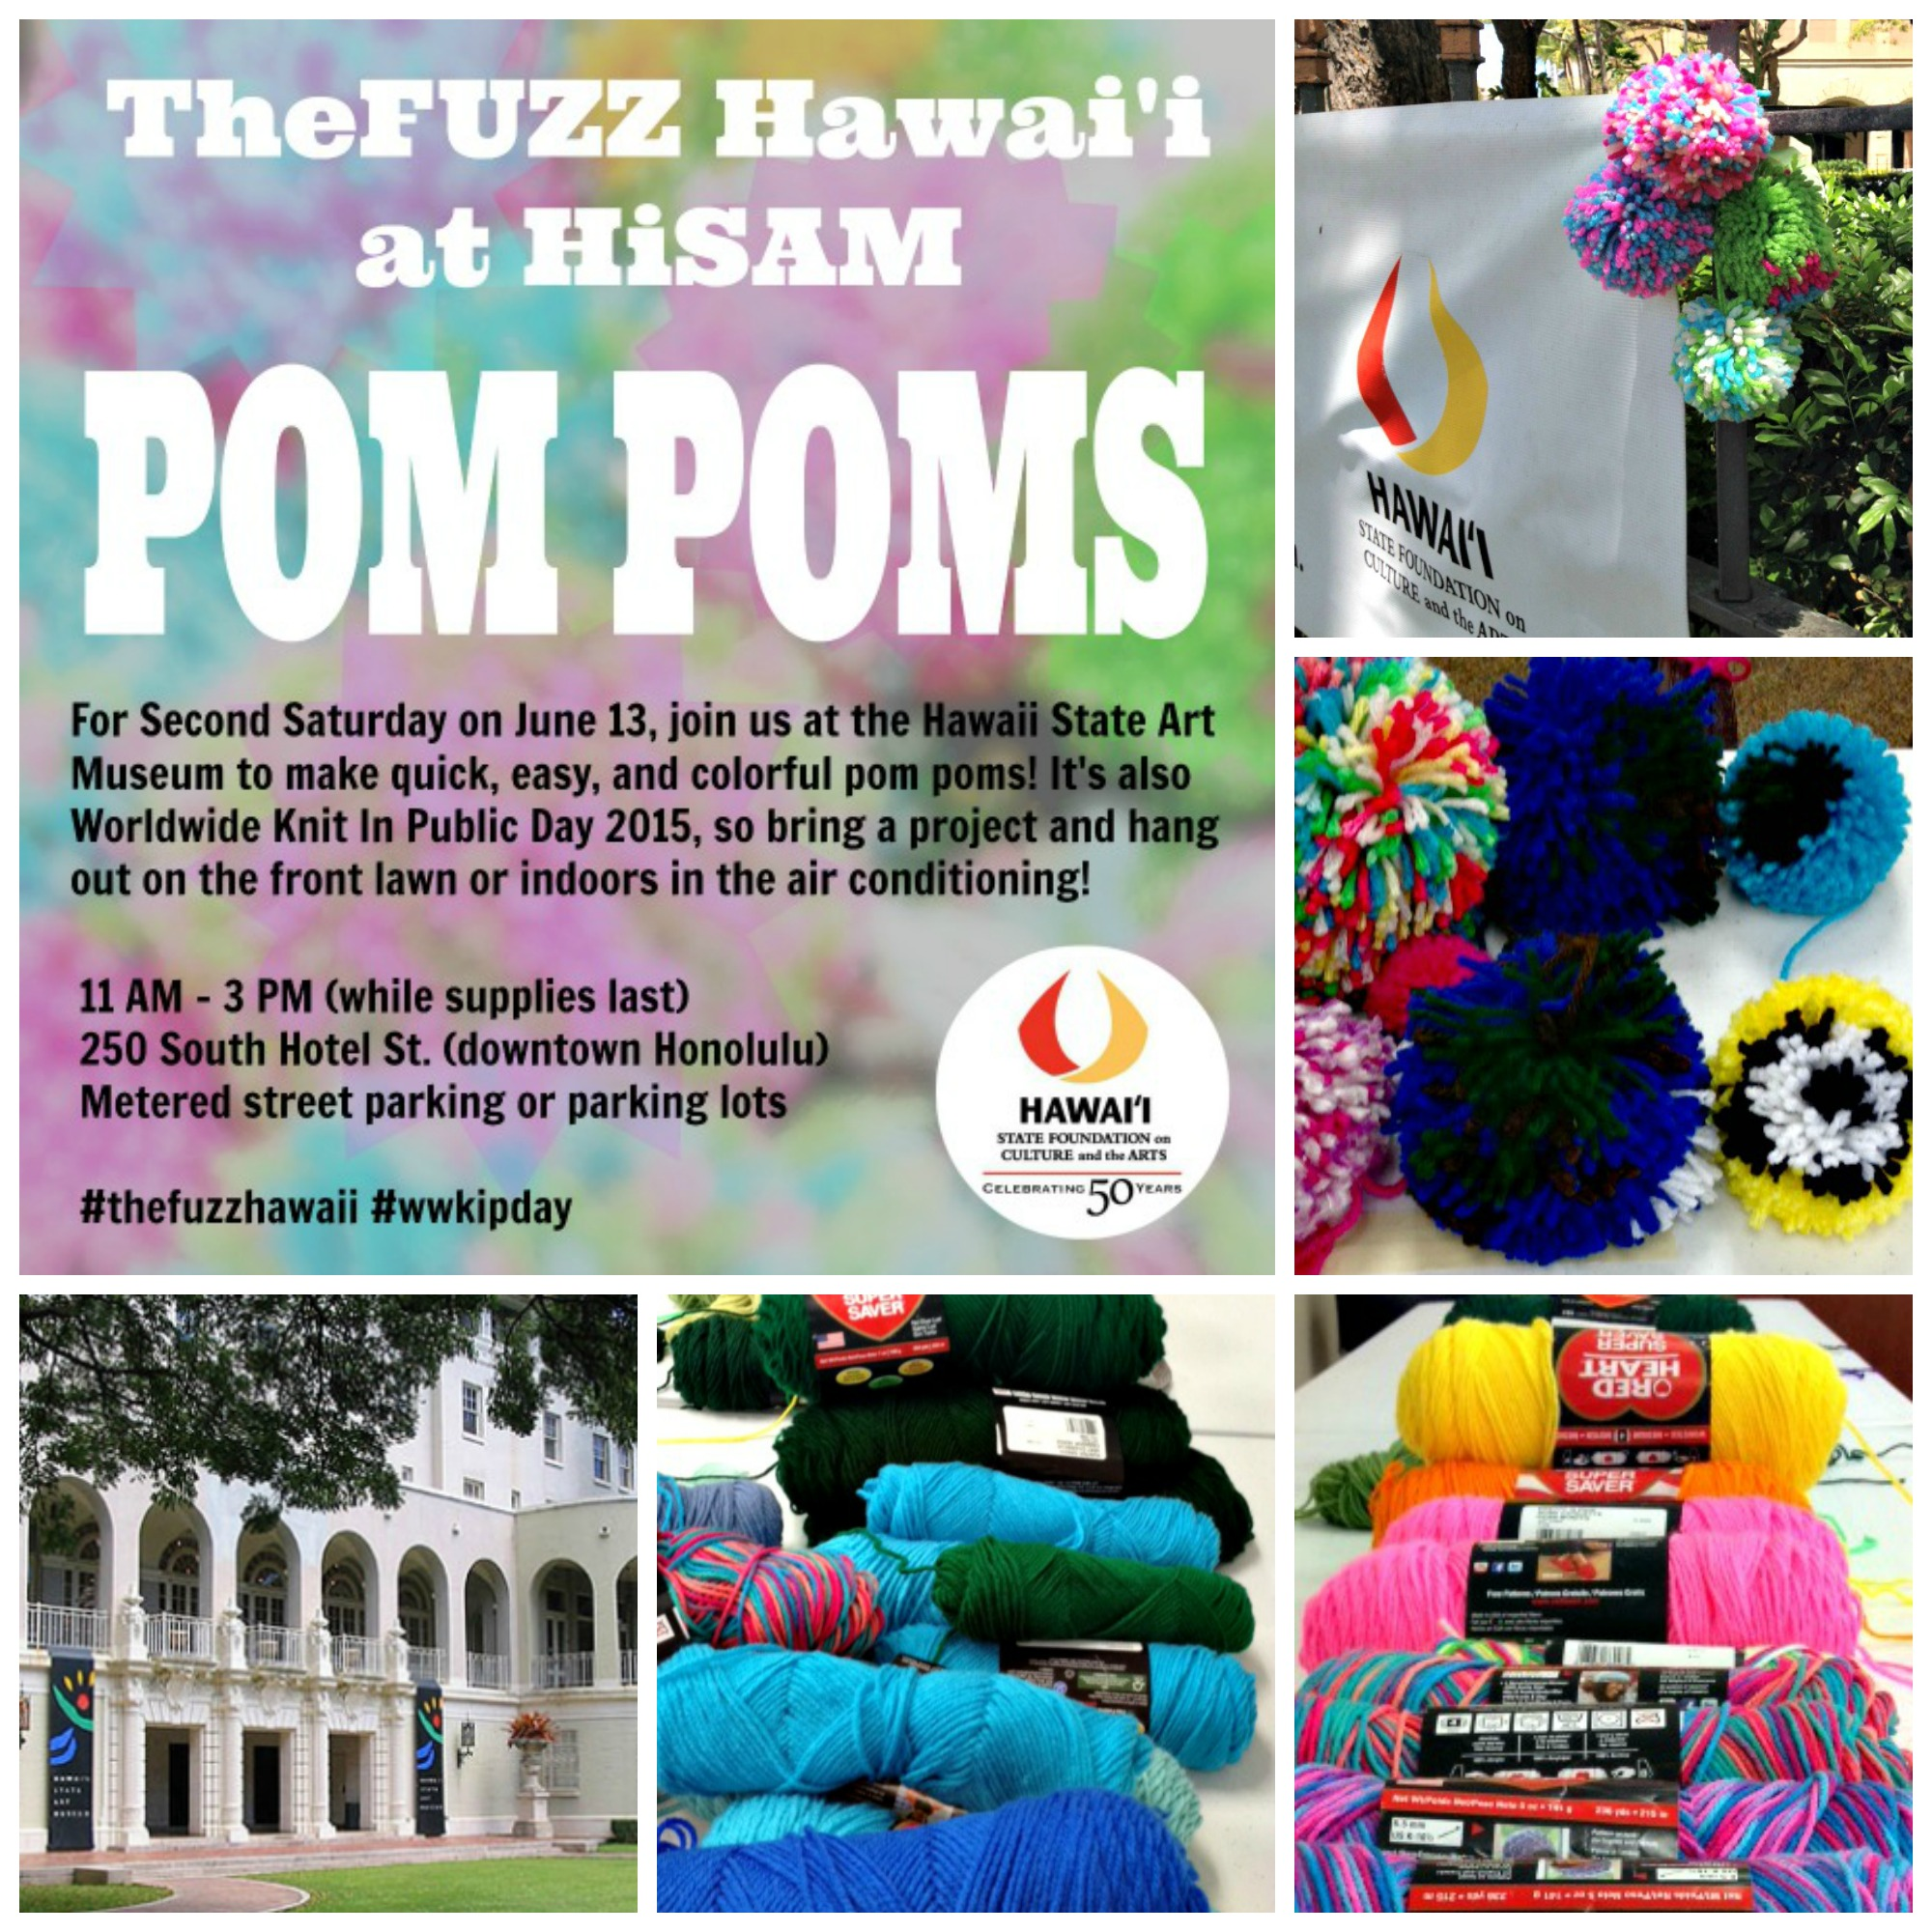 Second Saturday June 13, 2015 | TheFUZZ Hawai'i @HiSAM